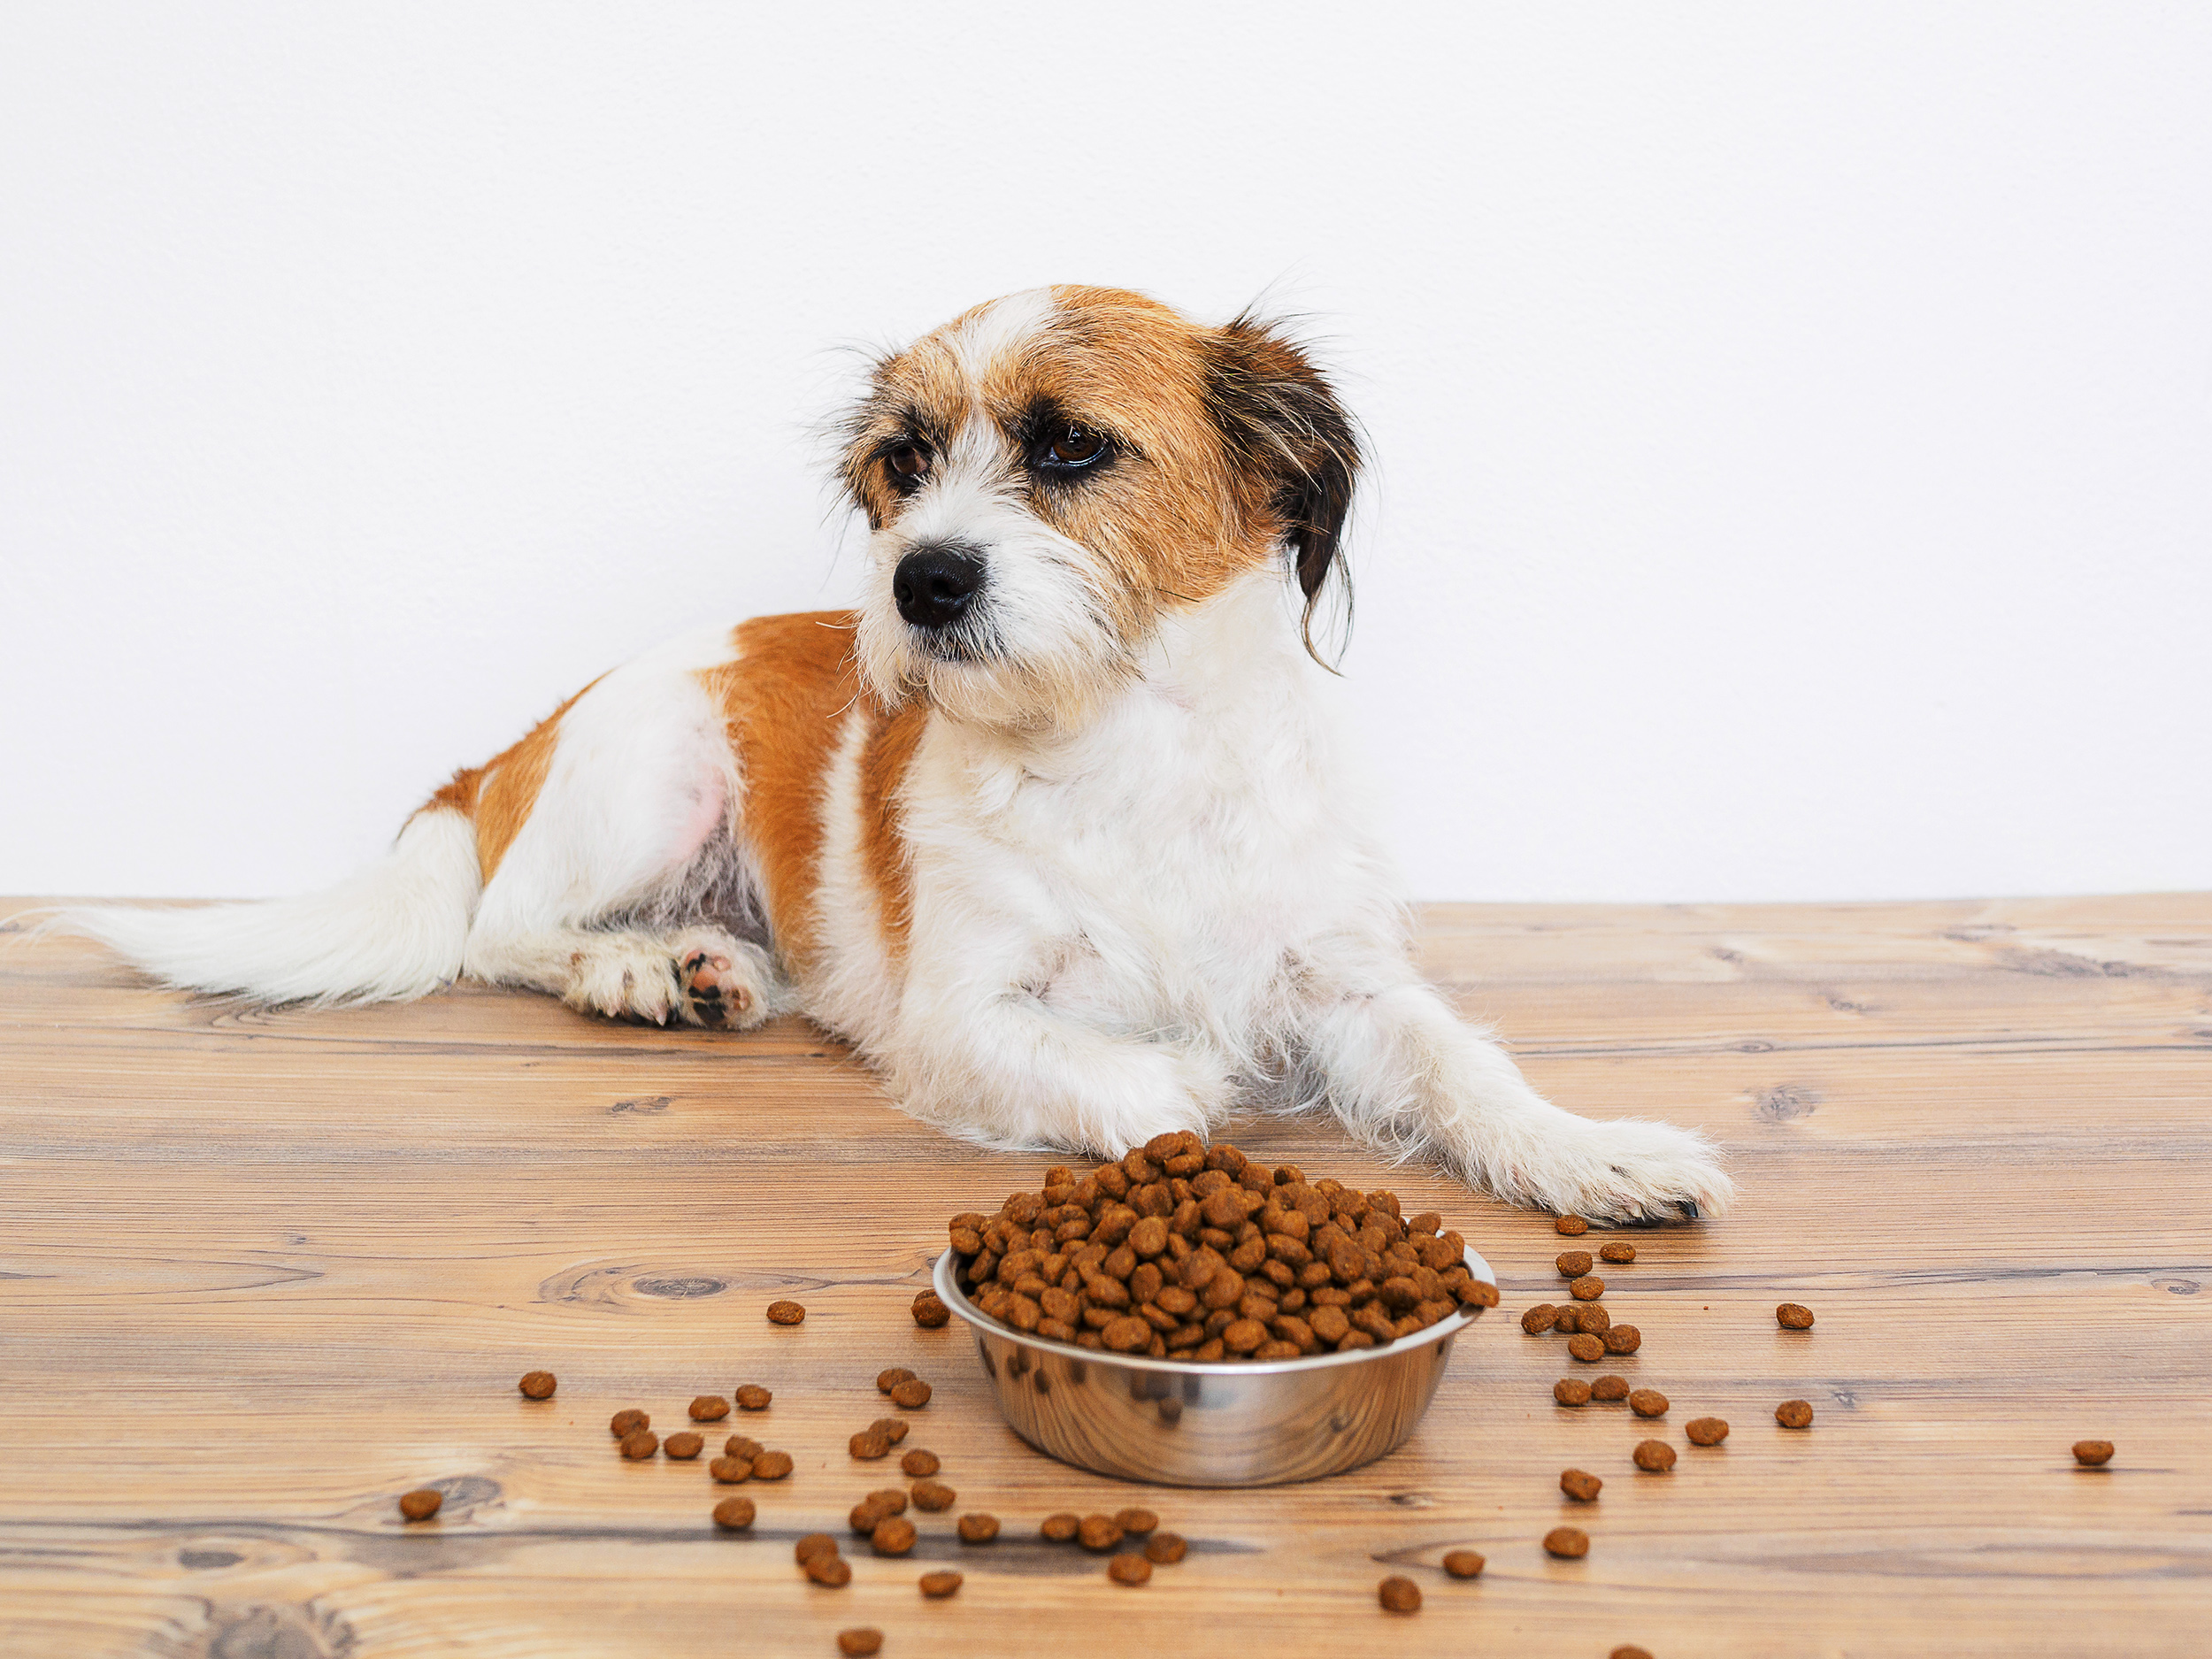 How To Tell If a Dog Food Is Bad